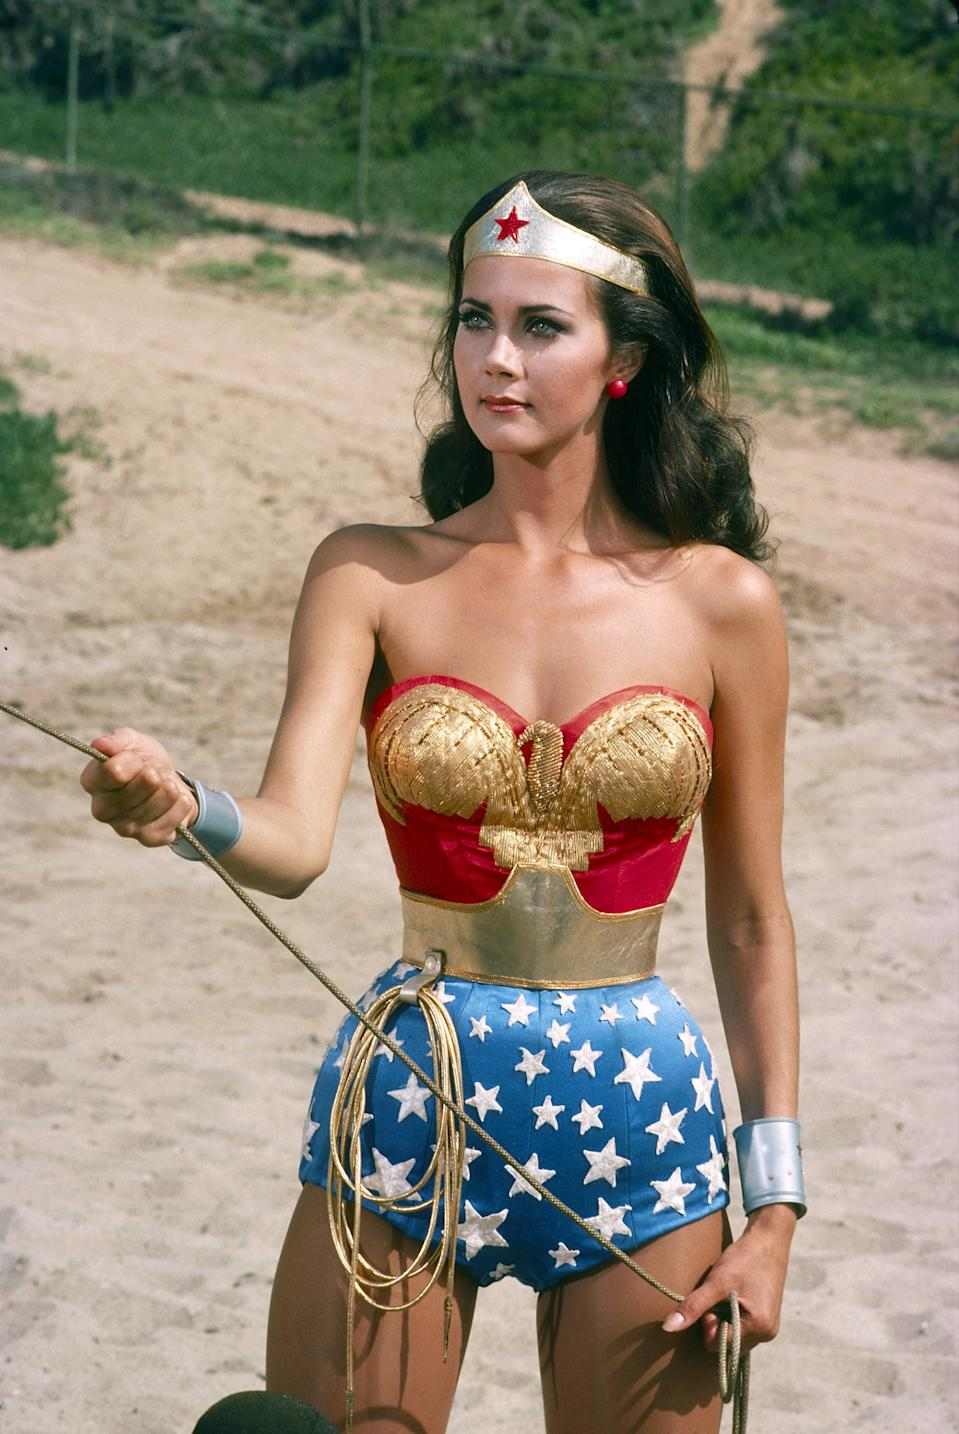 Lynda Carter como la 'Mujer Maravilla'. (Photo by Walt Disney Television via Getty Images Photo Archives/Walt Disney Television via Getty Images)